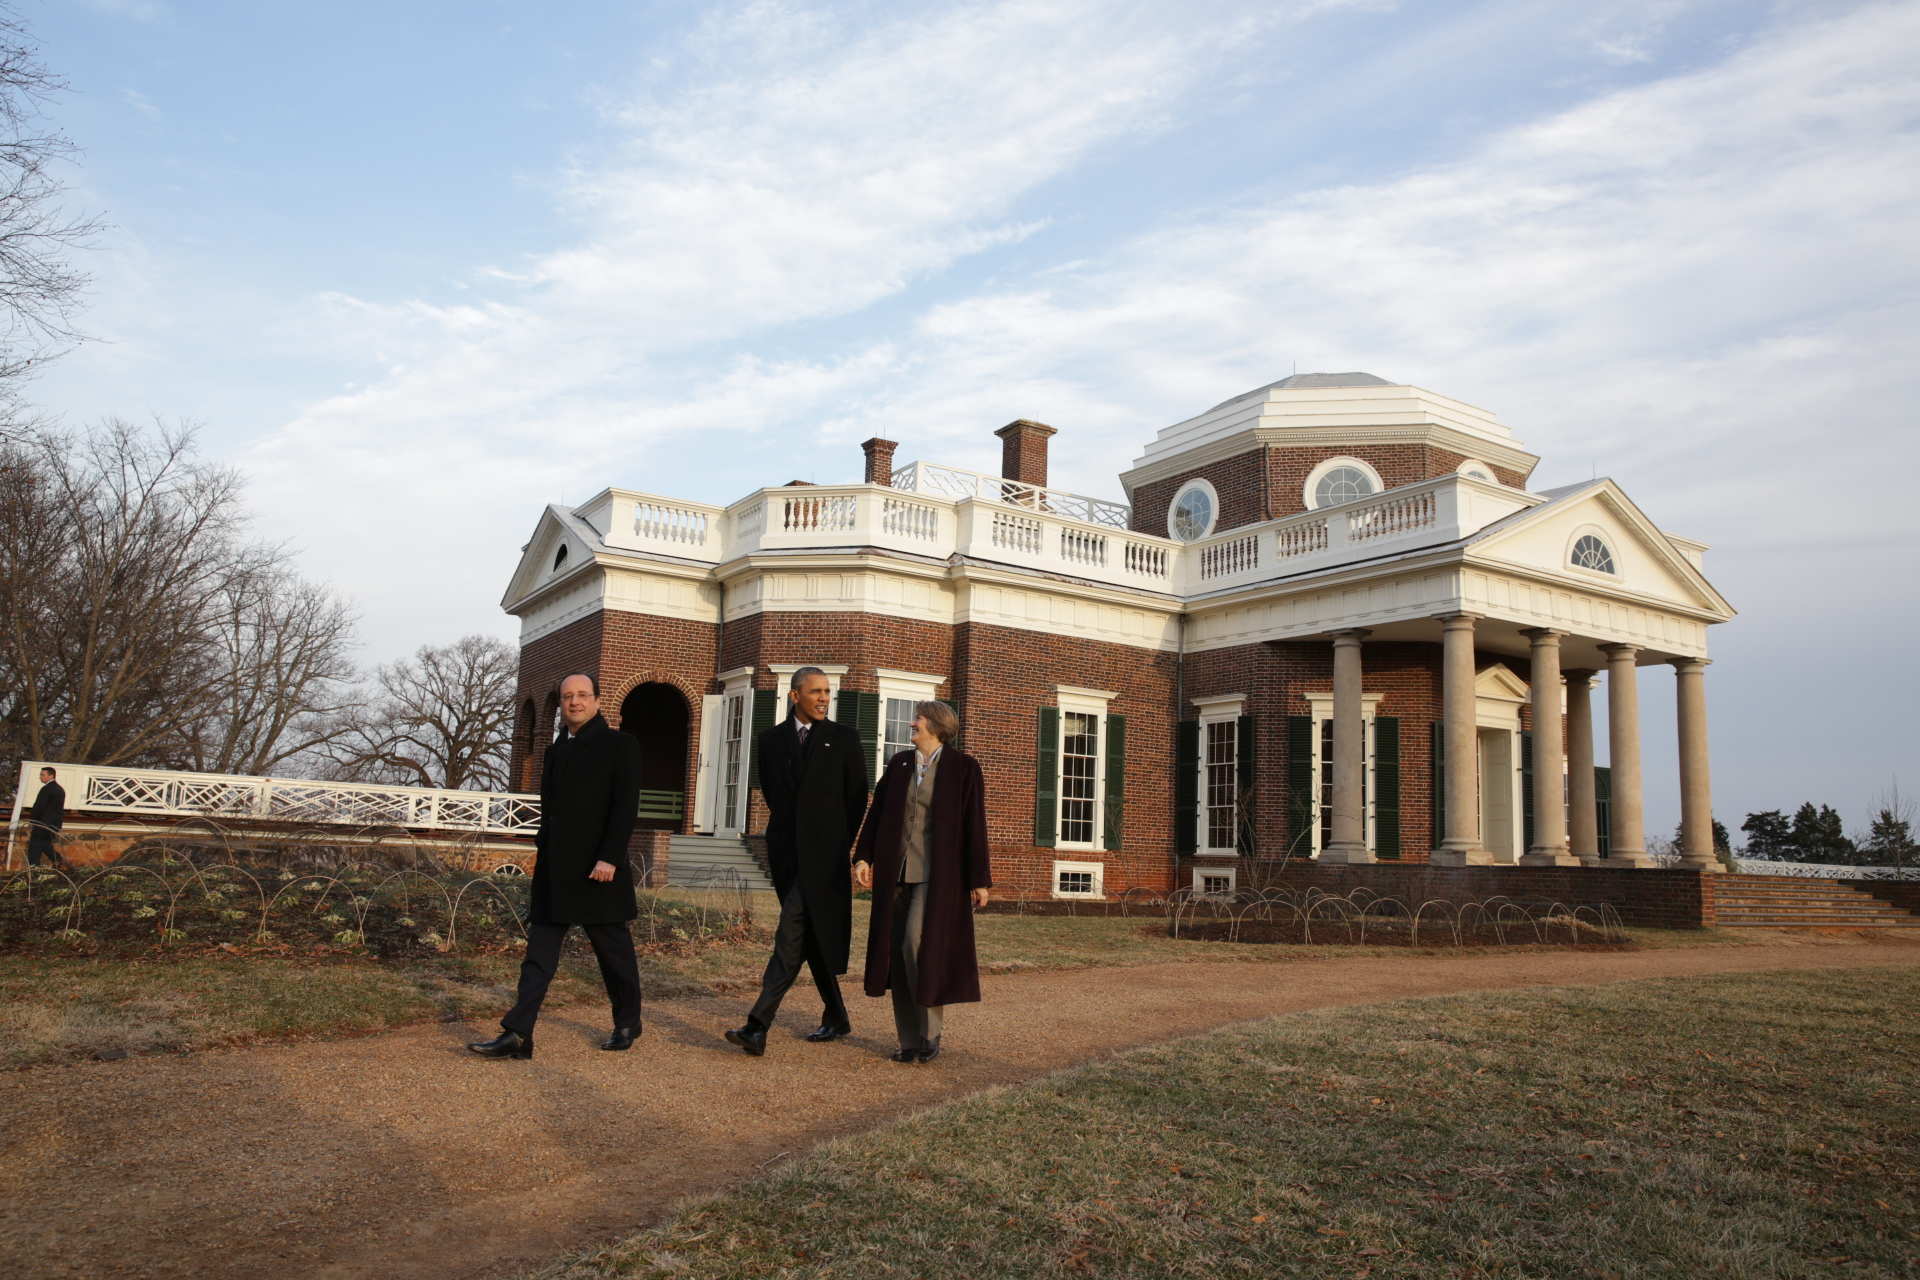 President Barack Obama and President François Hollande of France tour Monticello, the home of Thomas Jefferson in Charlottesville, Va.